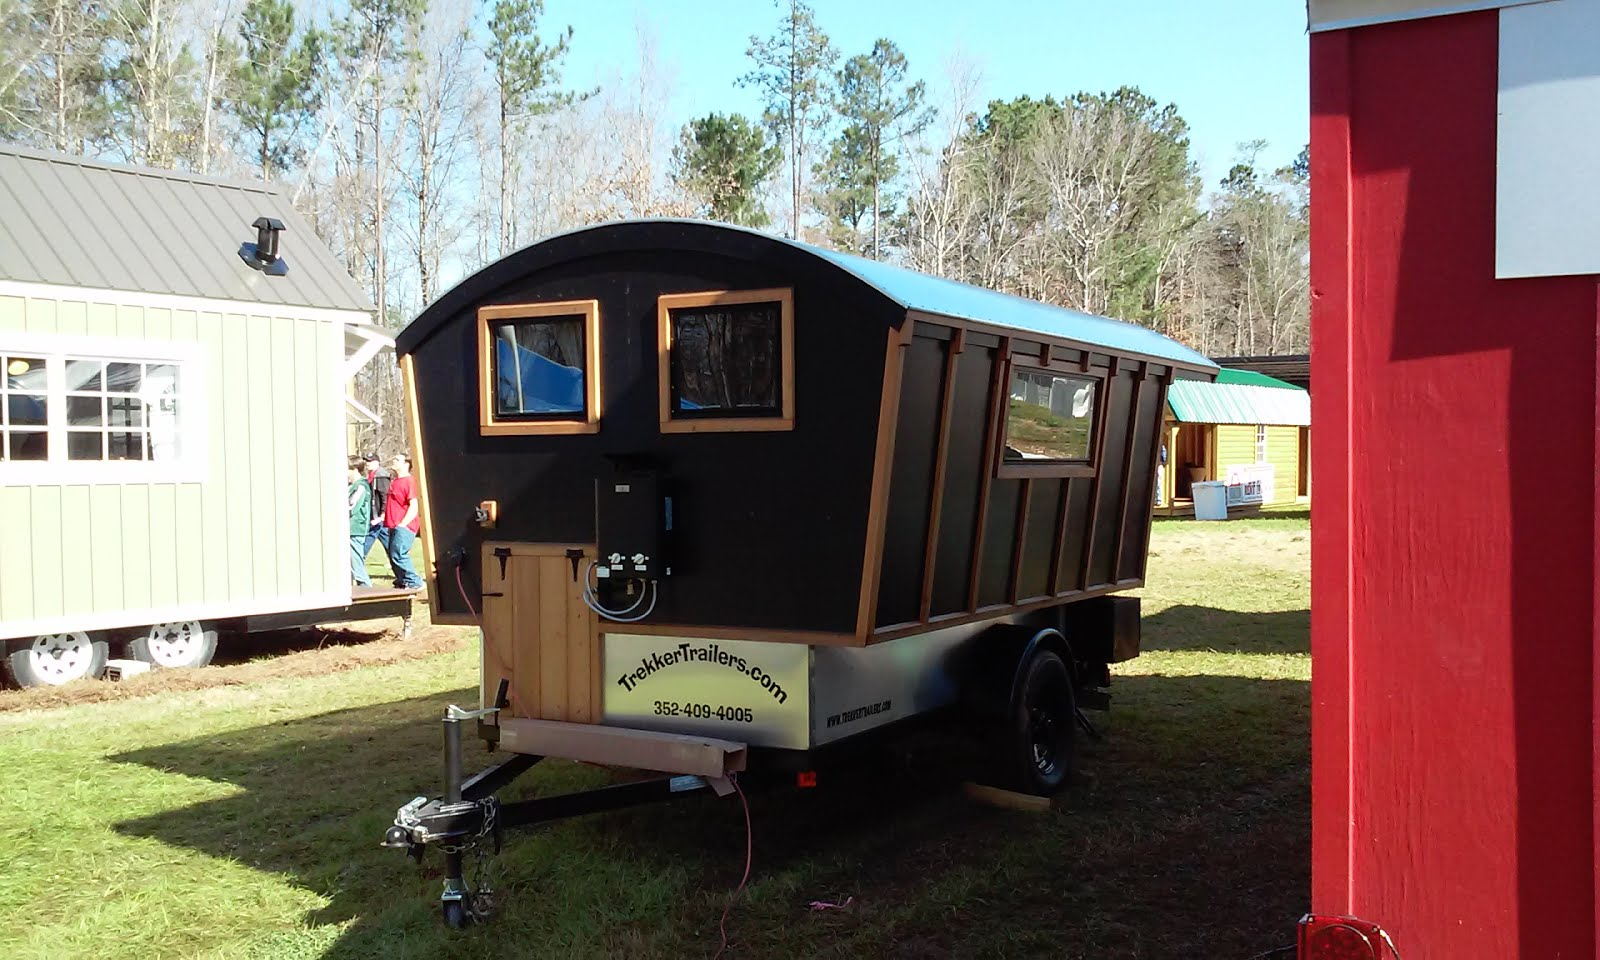 South Florida Tiny Home Movement From the Georgia Tiny House